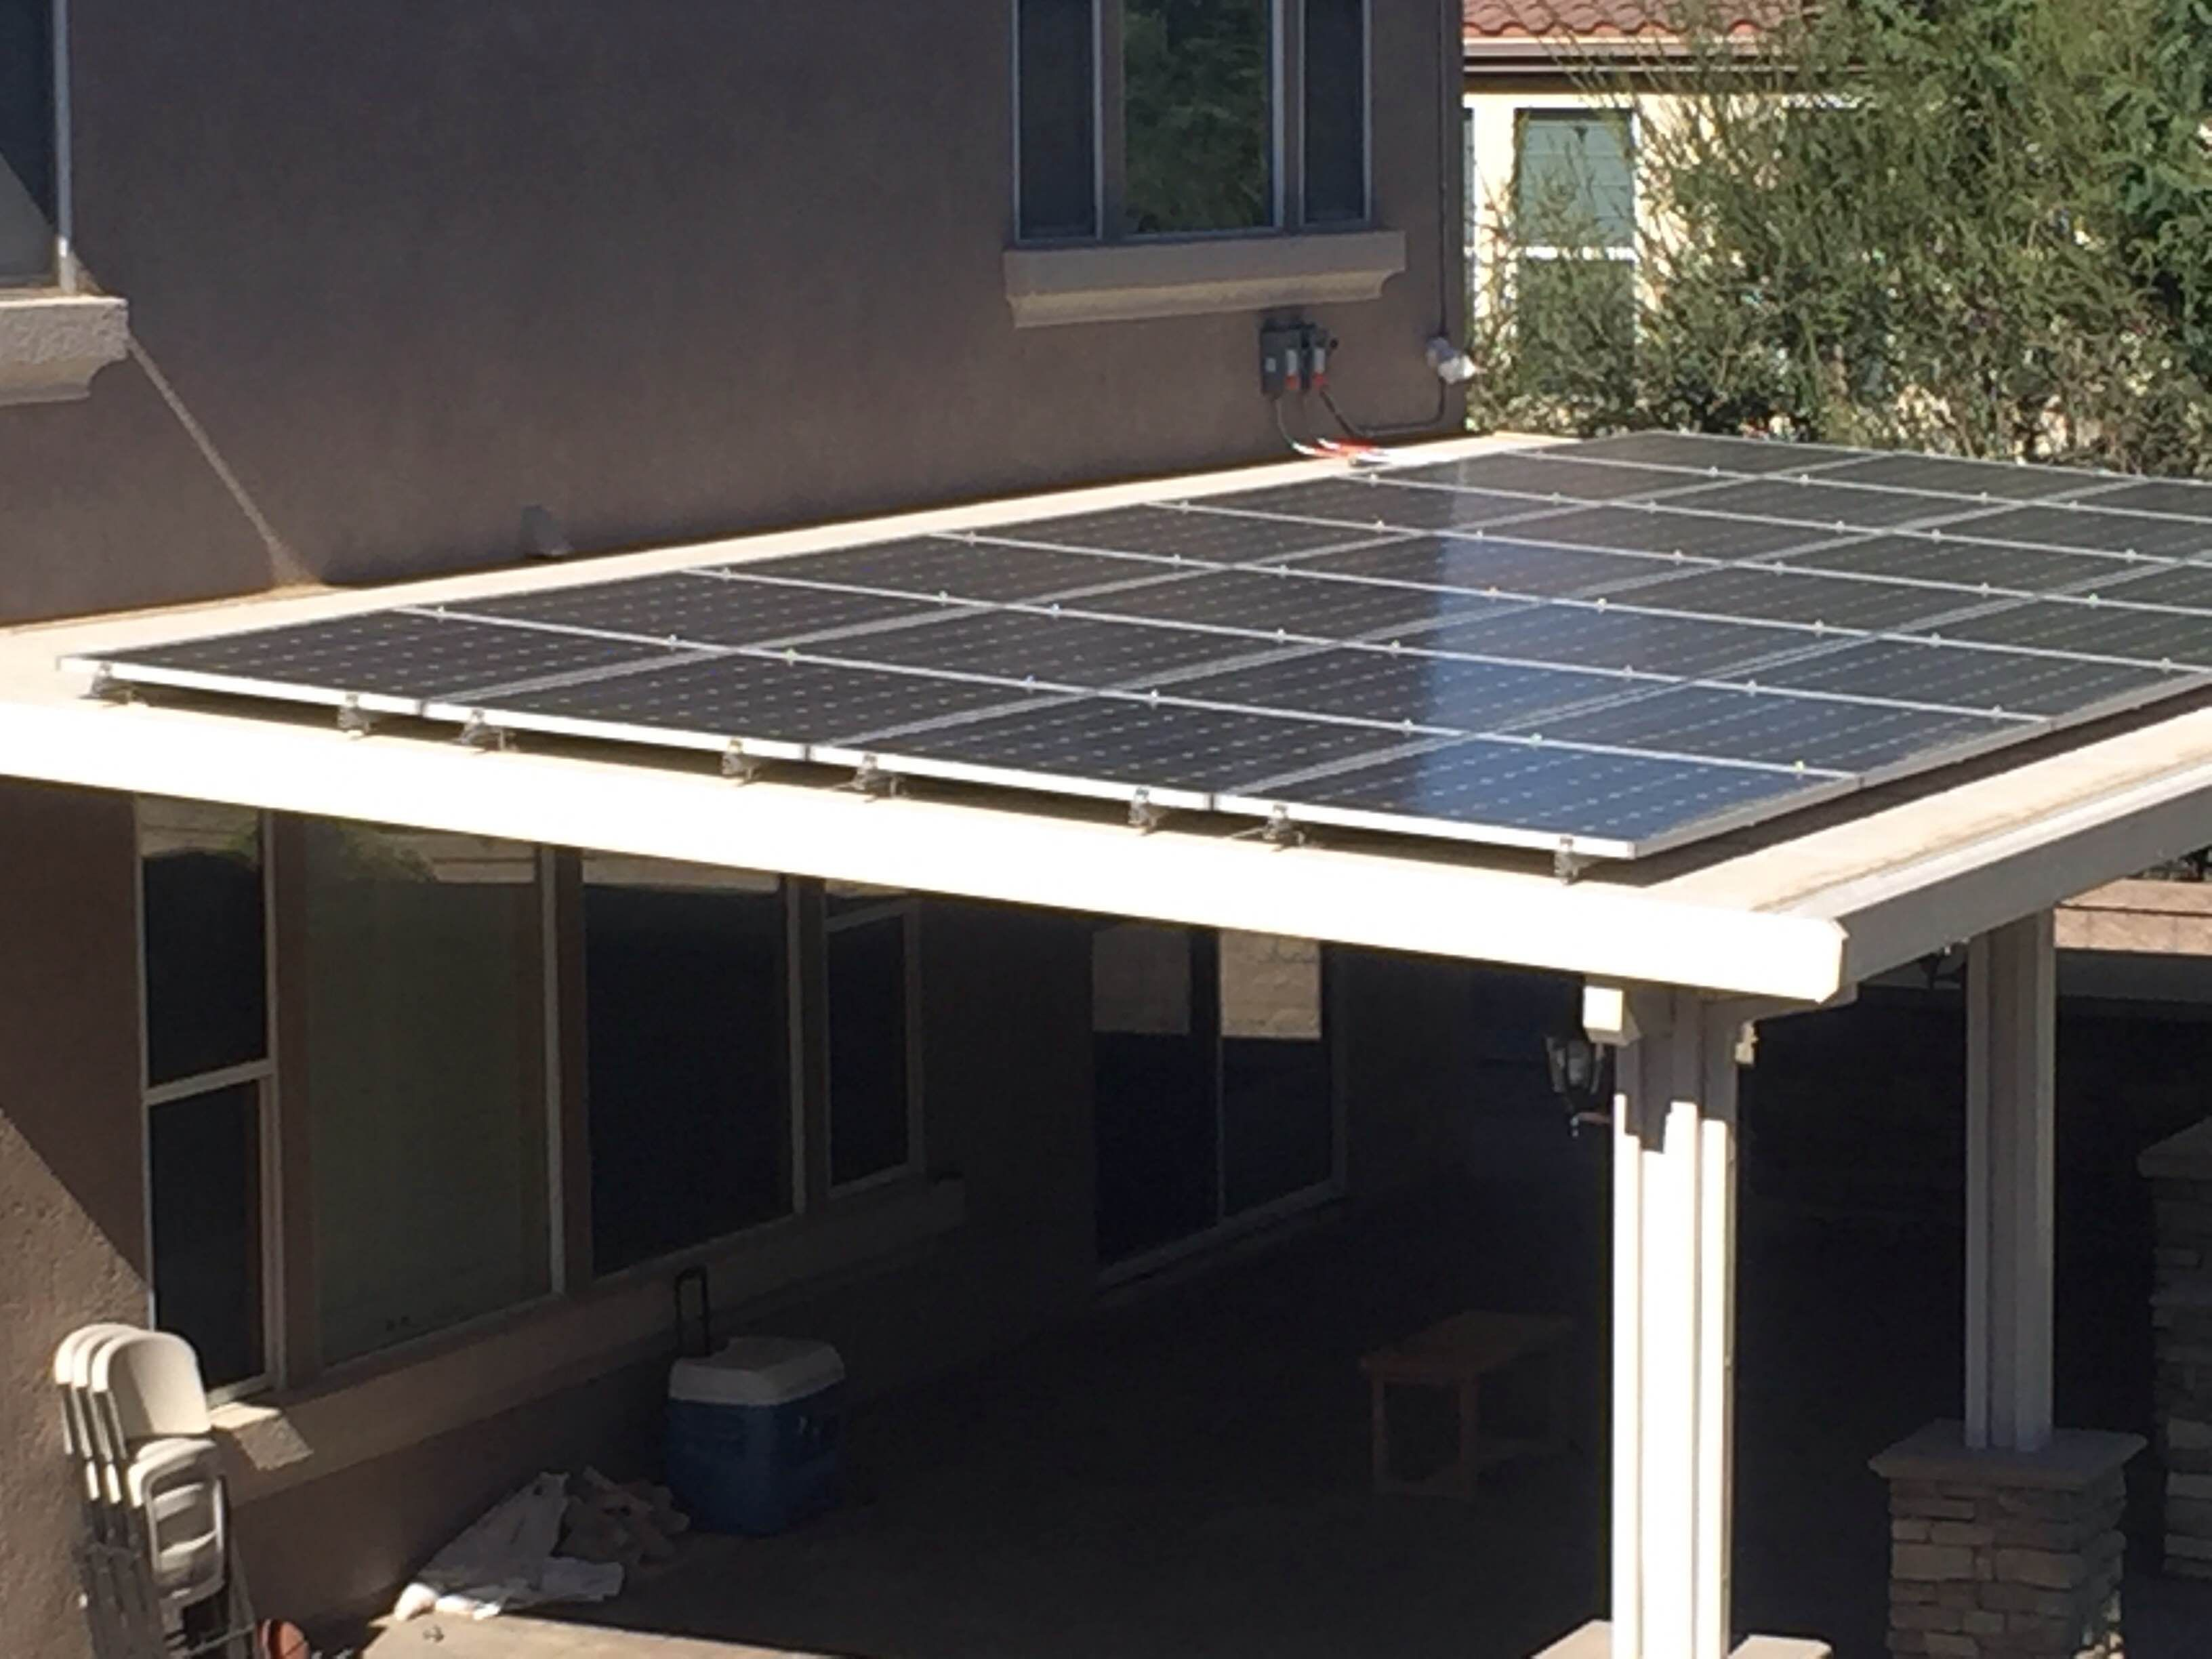 Solar Patio Cover (With images) | Aluminum patio covers ...